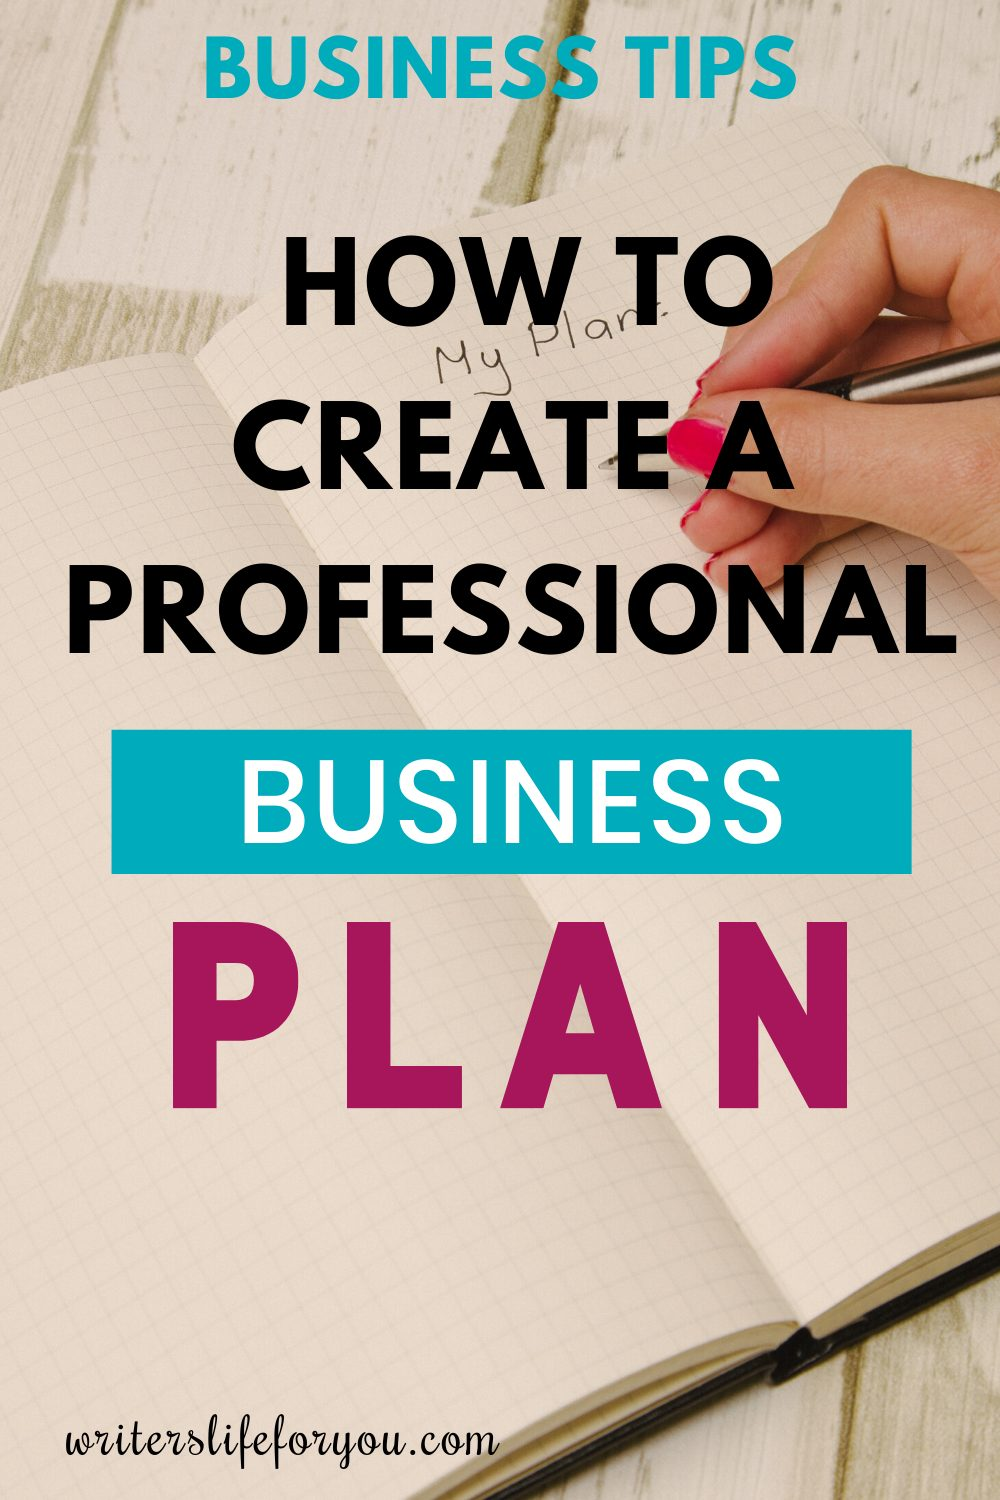 Create A Professional Business Plan and Focused Timeline For The Best Results